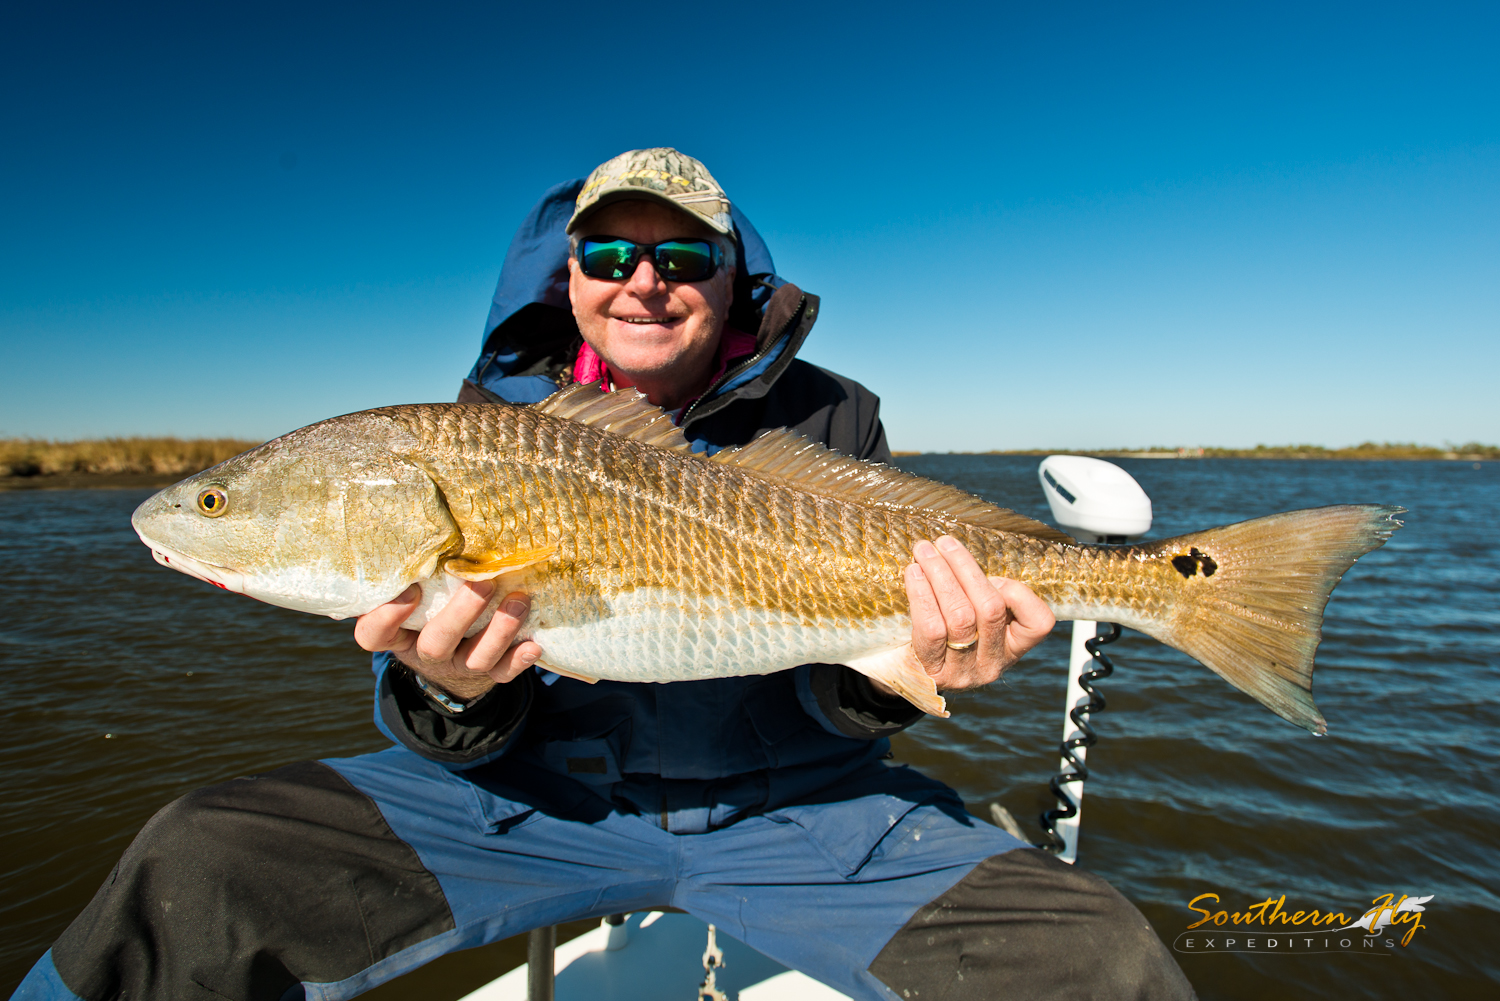 Edge Water Sight Fishing Louisiana Southern Fly Expeditions